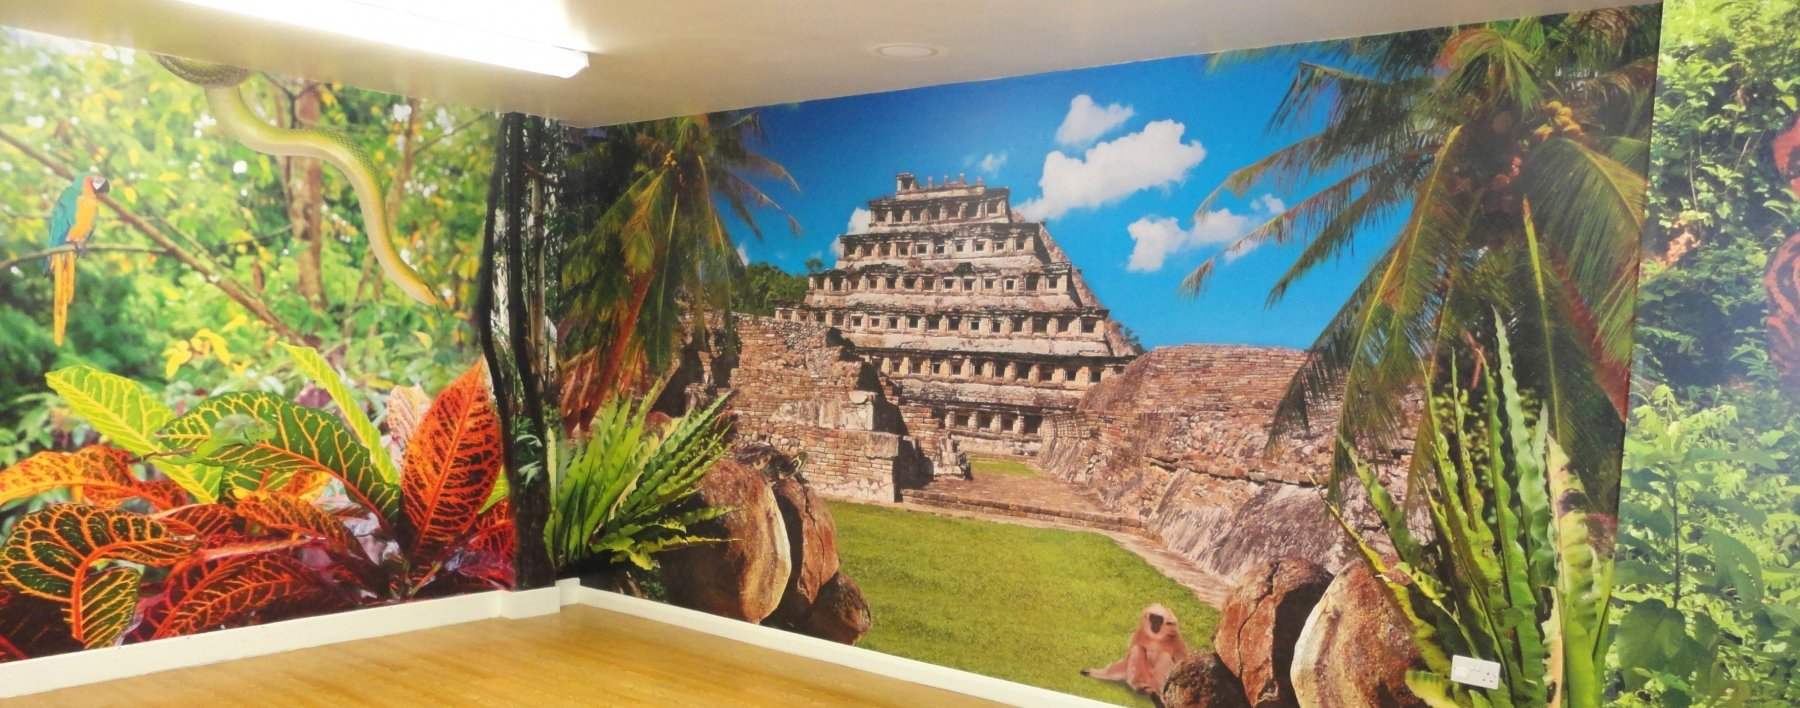 Aztec Soft Play interior wall mural by Astaura Corporate Interiors